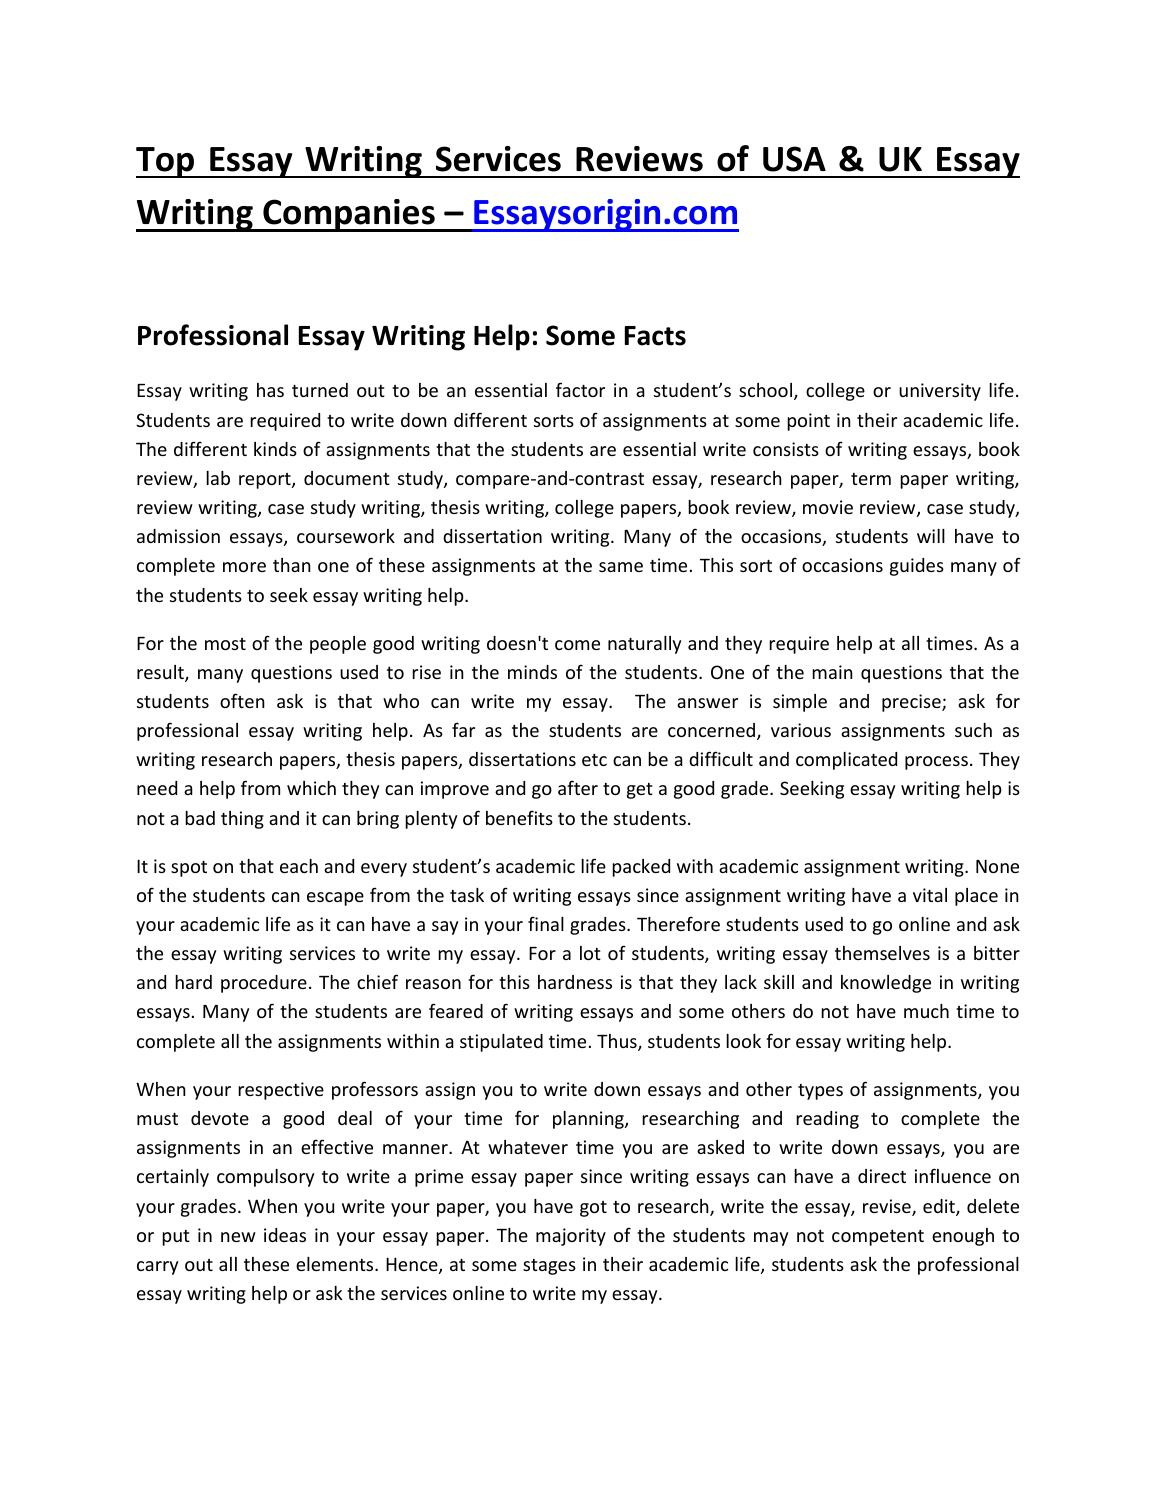 023 Essay Writing Companies Uk Example Page 1 Top Websites Sites Full